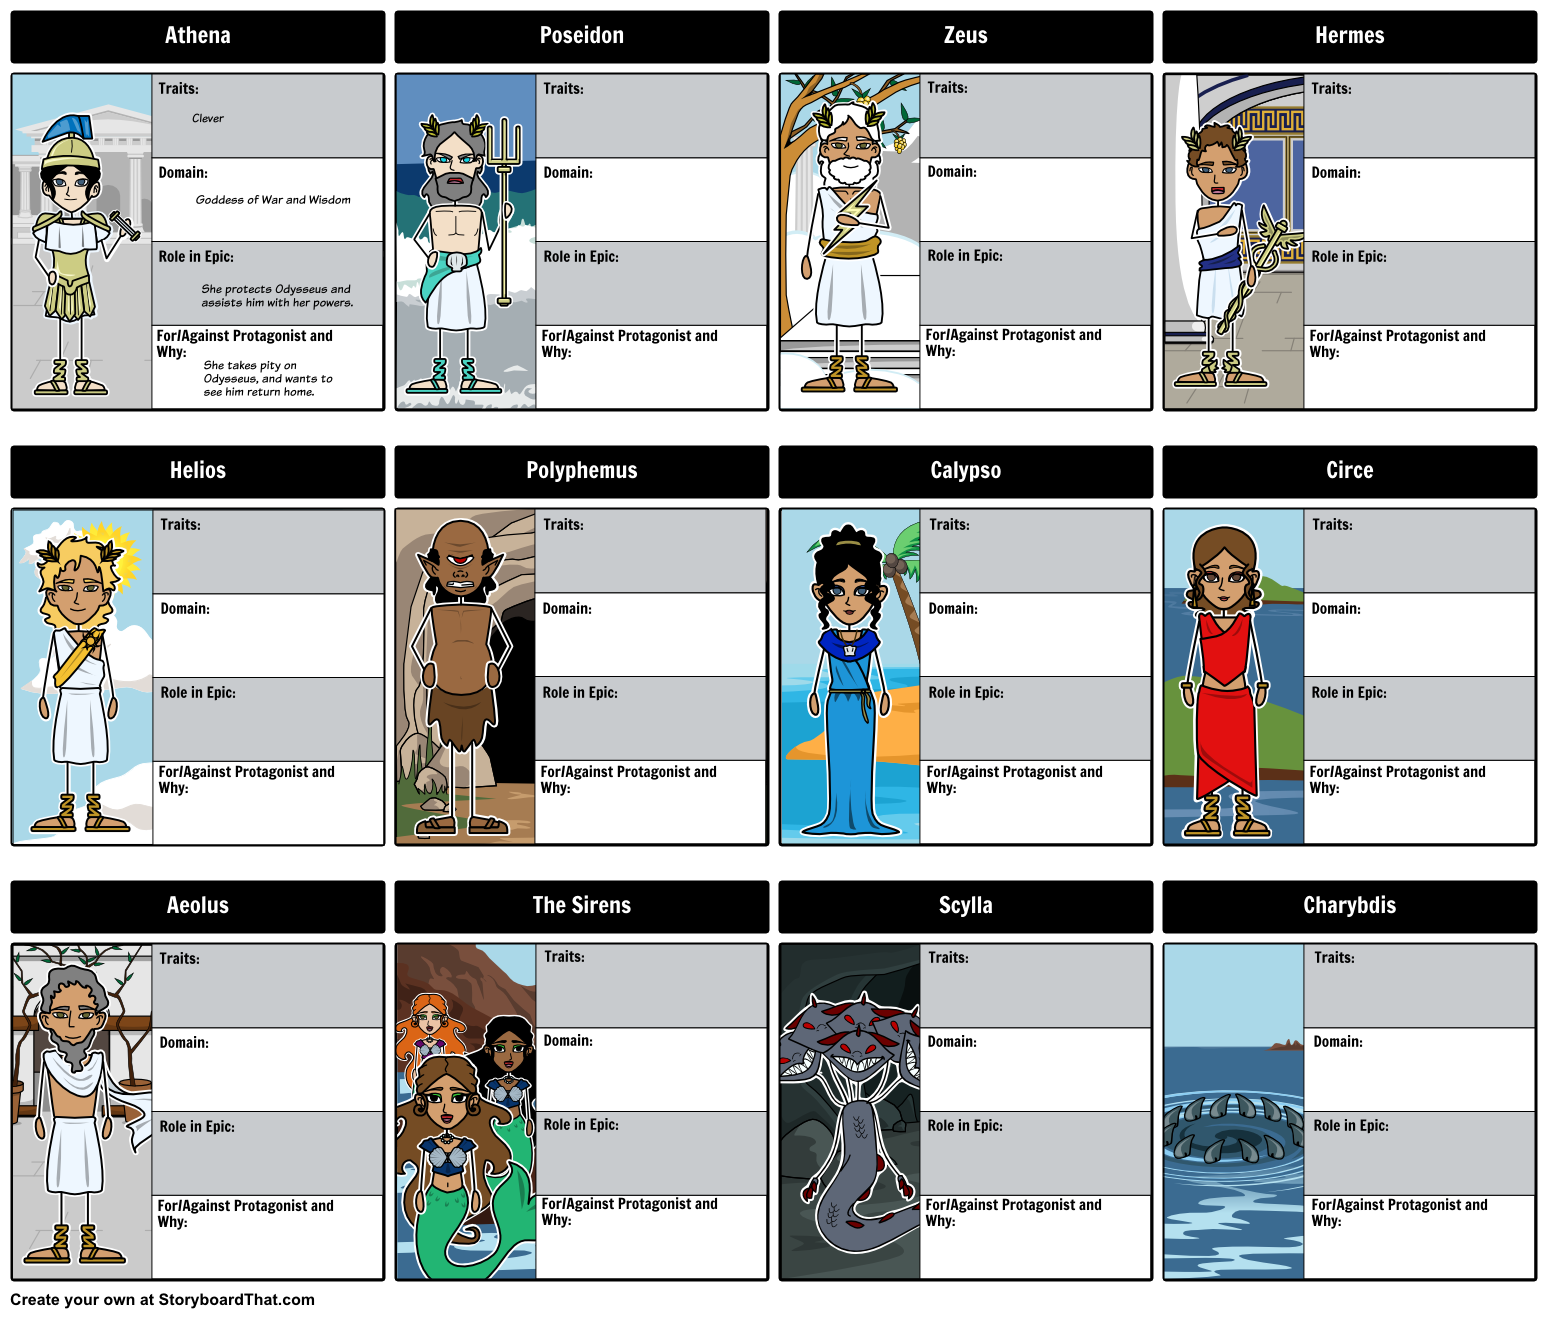 Homer odyssey character map there are so many characters in the homer odyssey character map there are so many characters in the odyssey how biocorpaavc